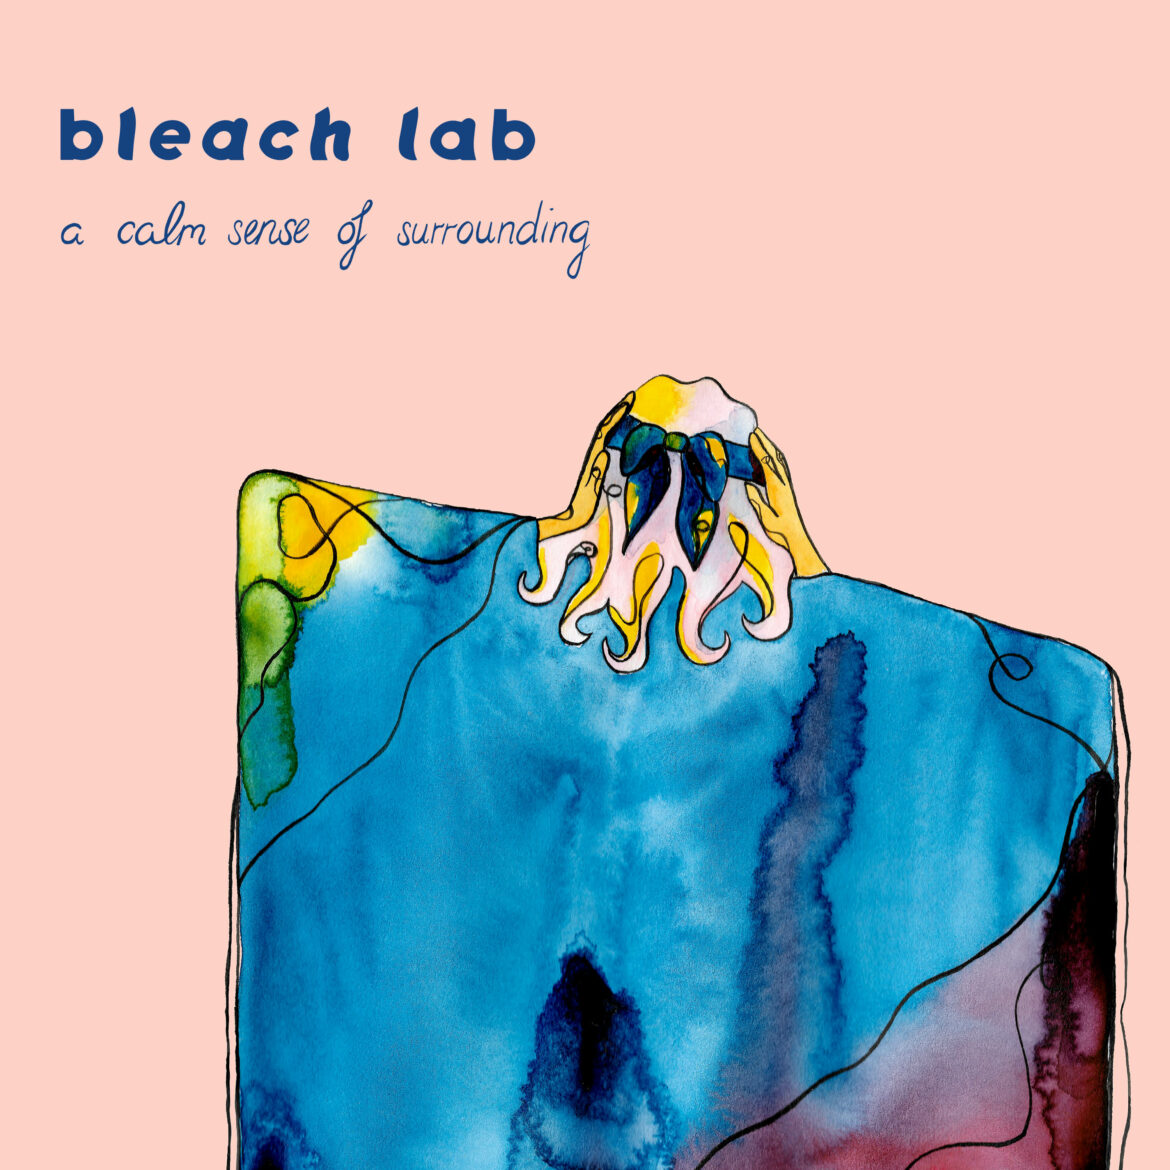 Bleach Lab – A Calm Sense of Surrounding (Self Released)